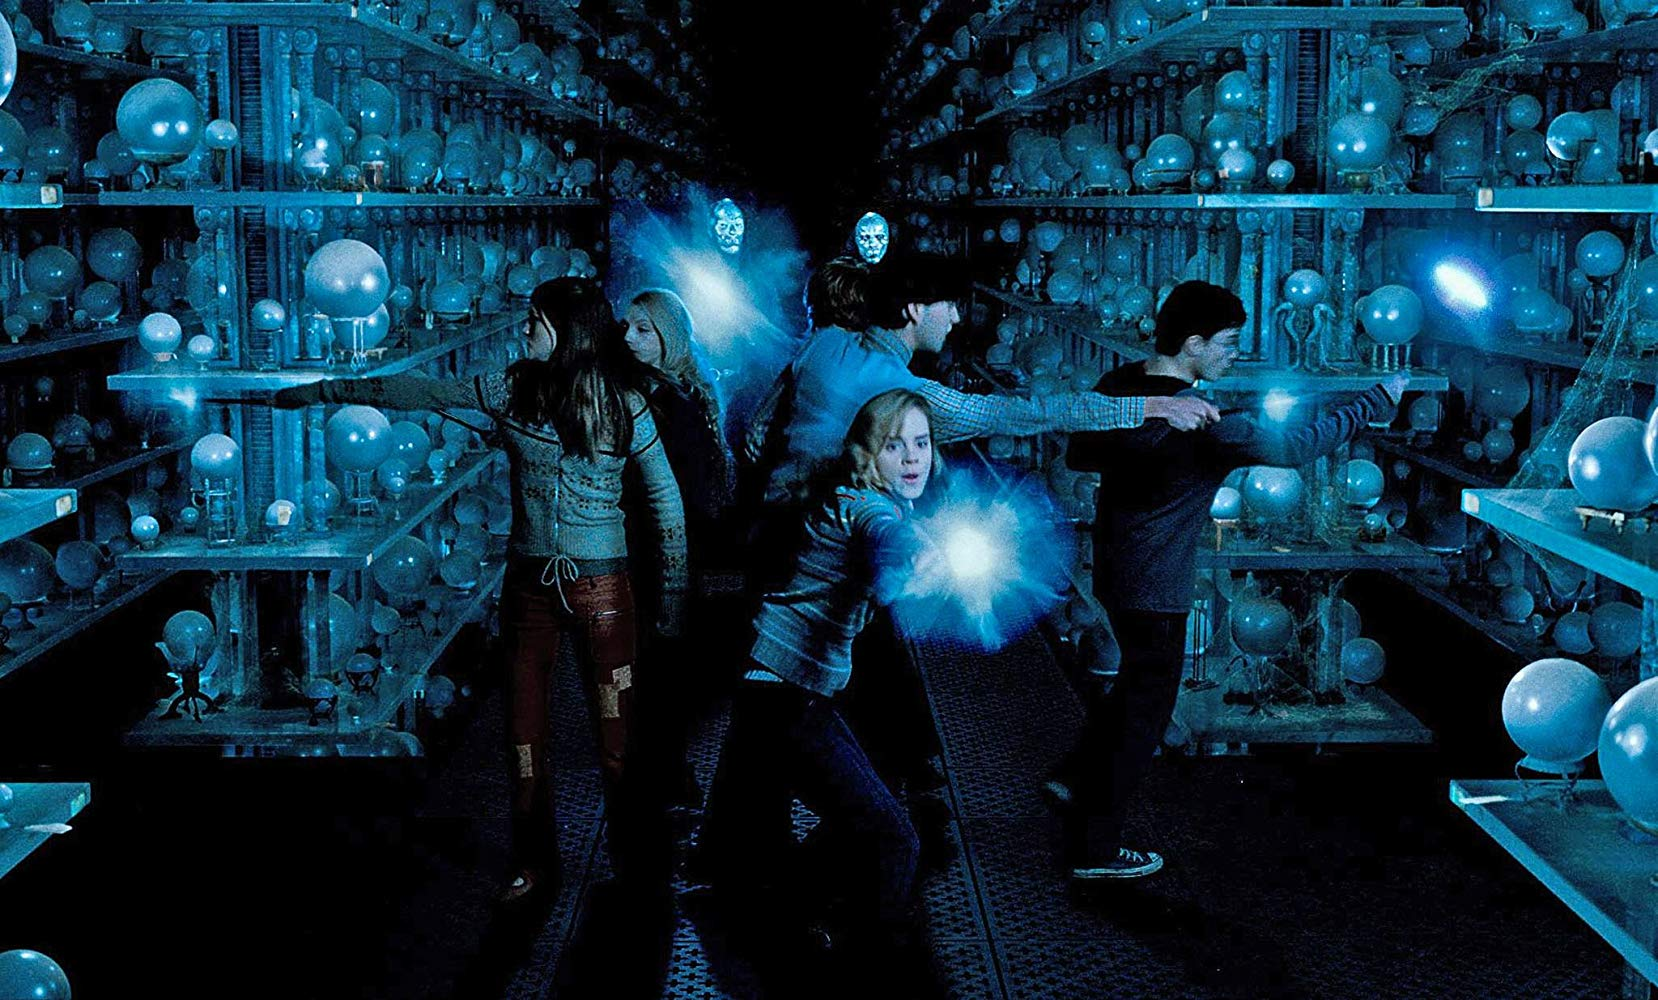 The group enter the Ministry of Magic basement in search of the prophecy in Harry Potter and the Order of the Phoenix (2007)